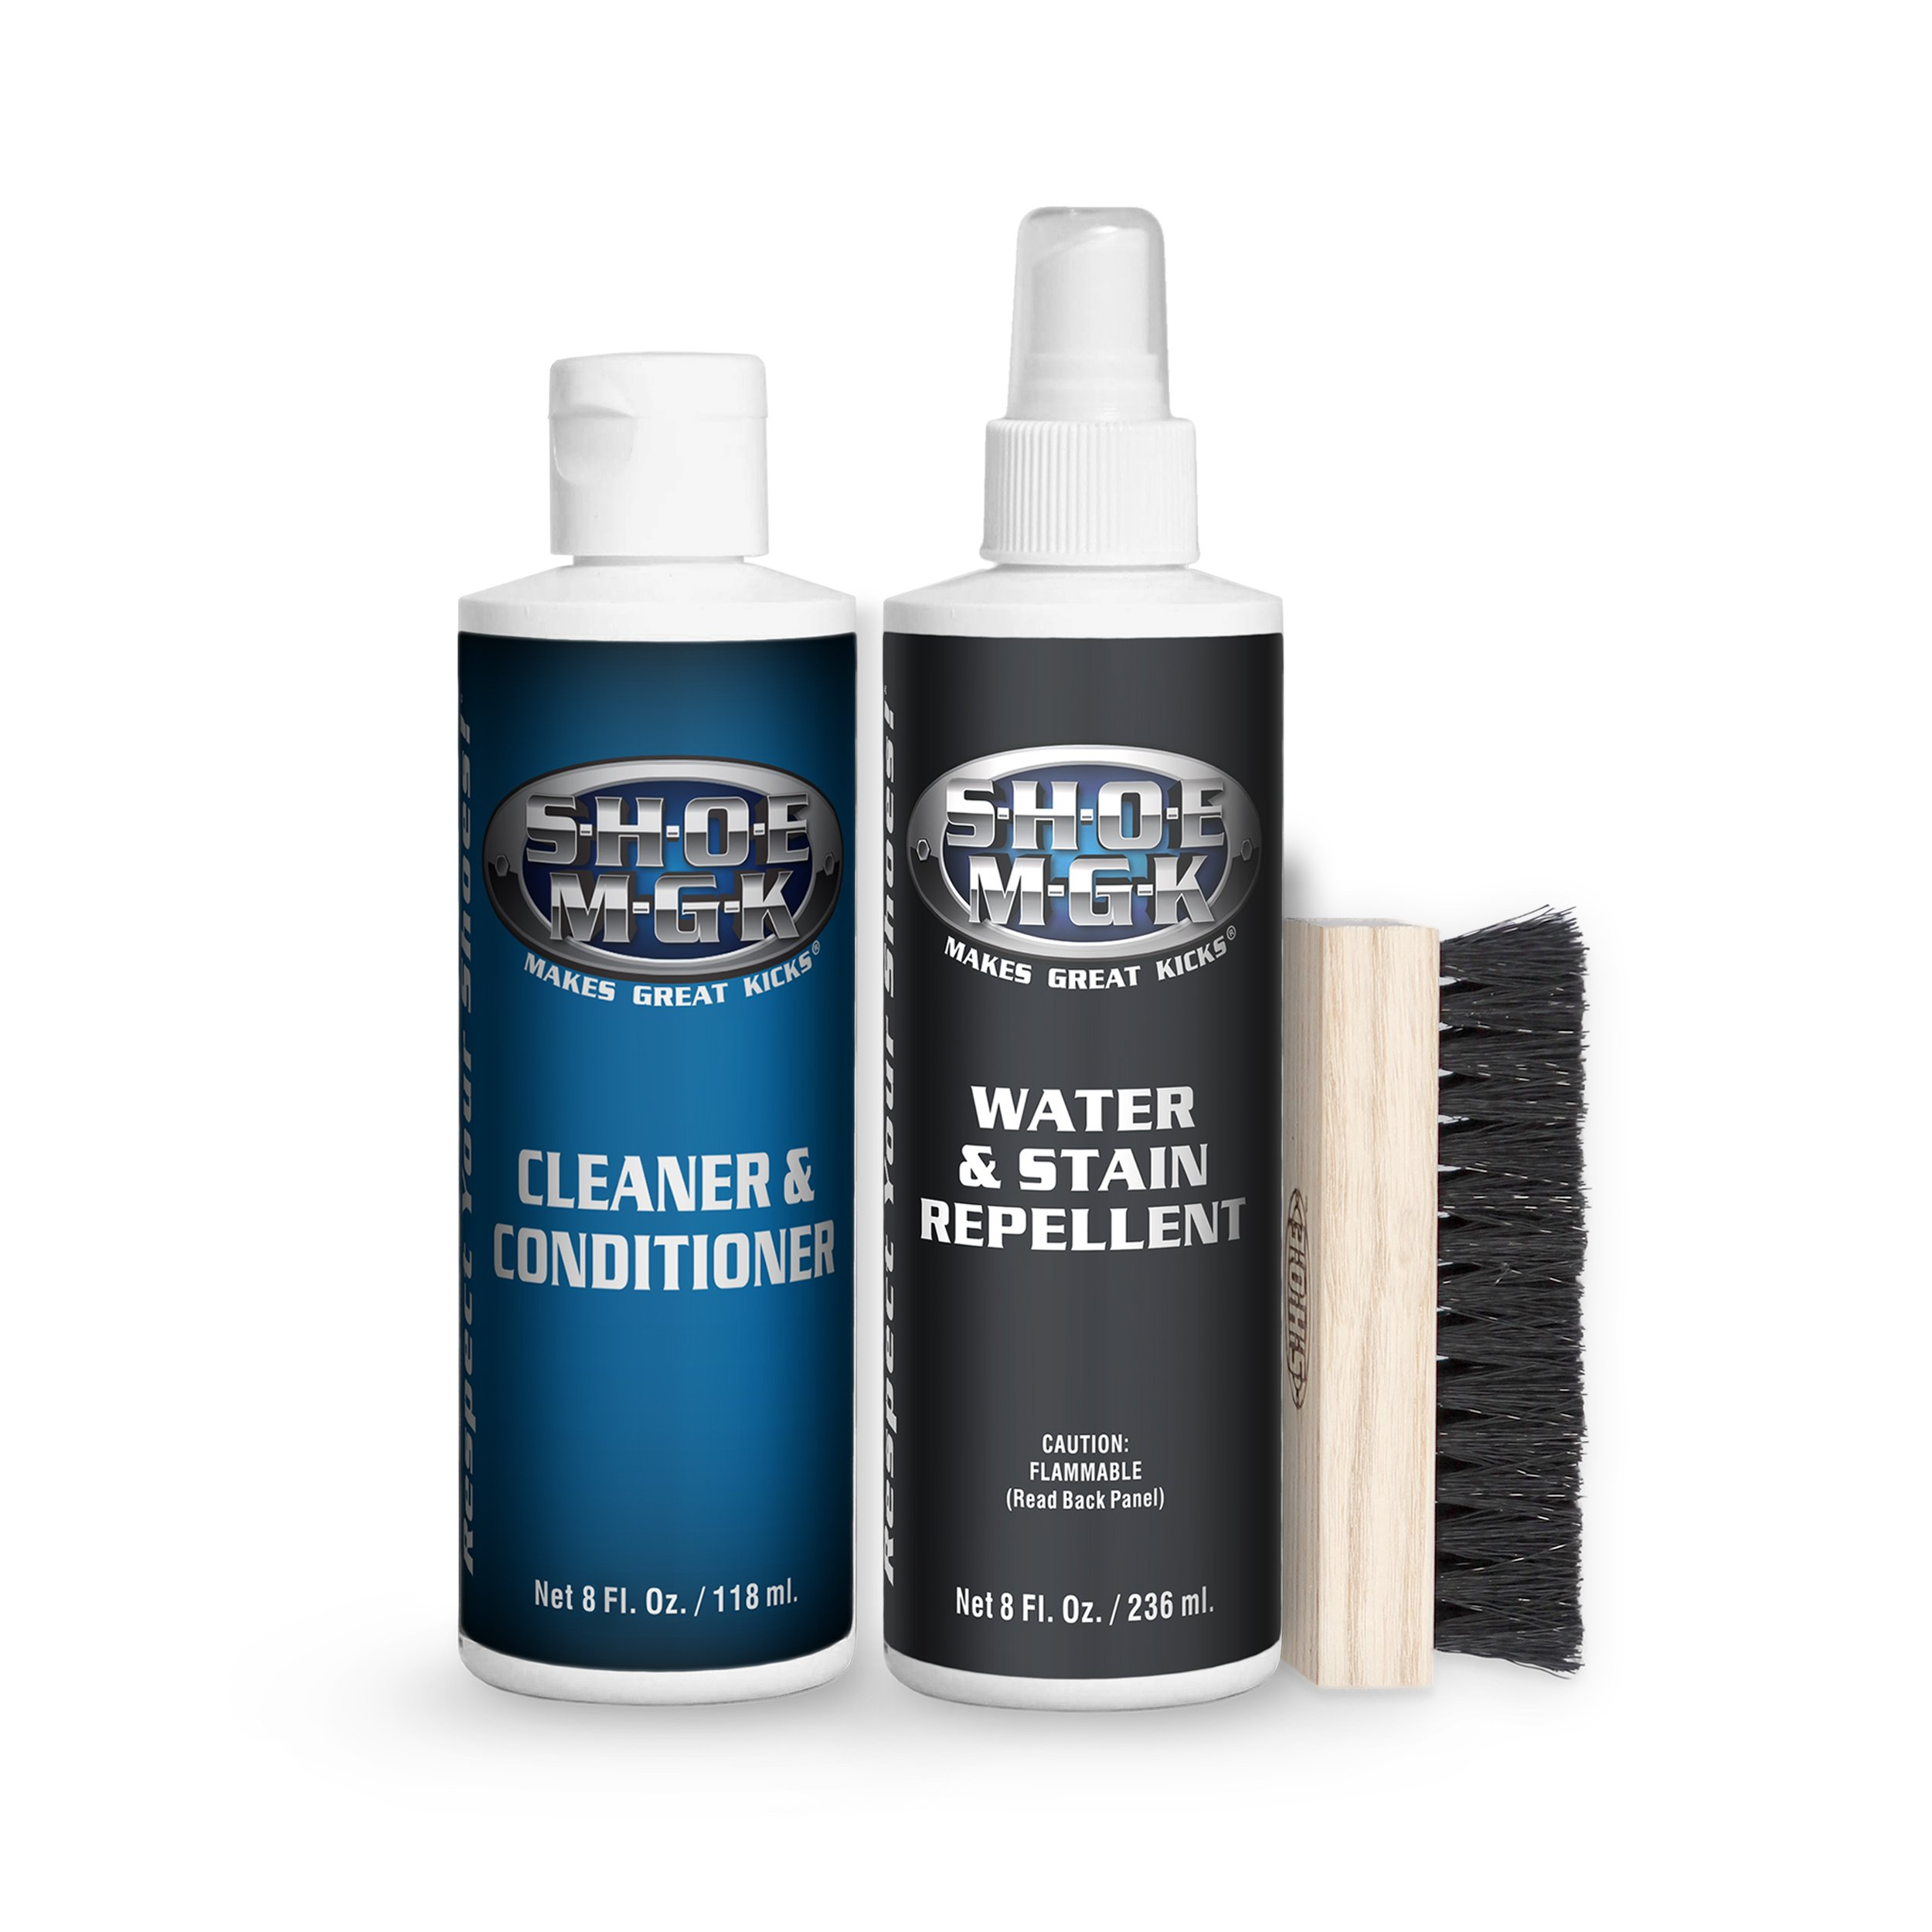 Shoe MGK Clean & Protect - Water & Stain Repellent Kit …